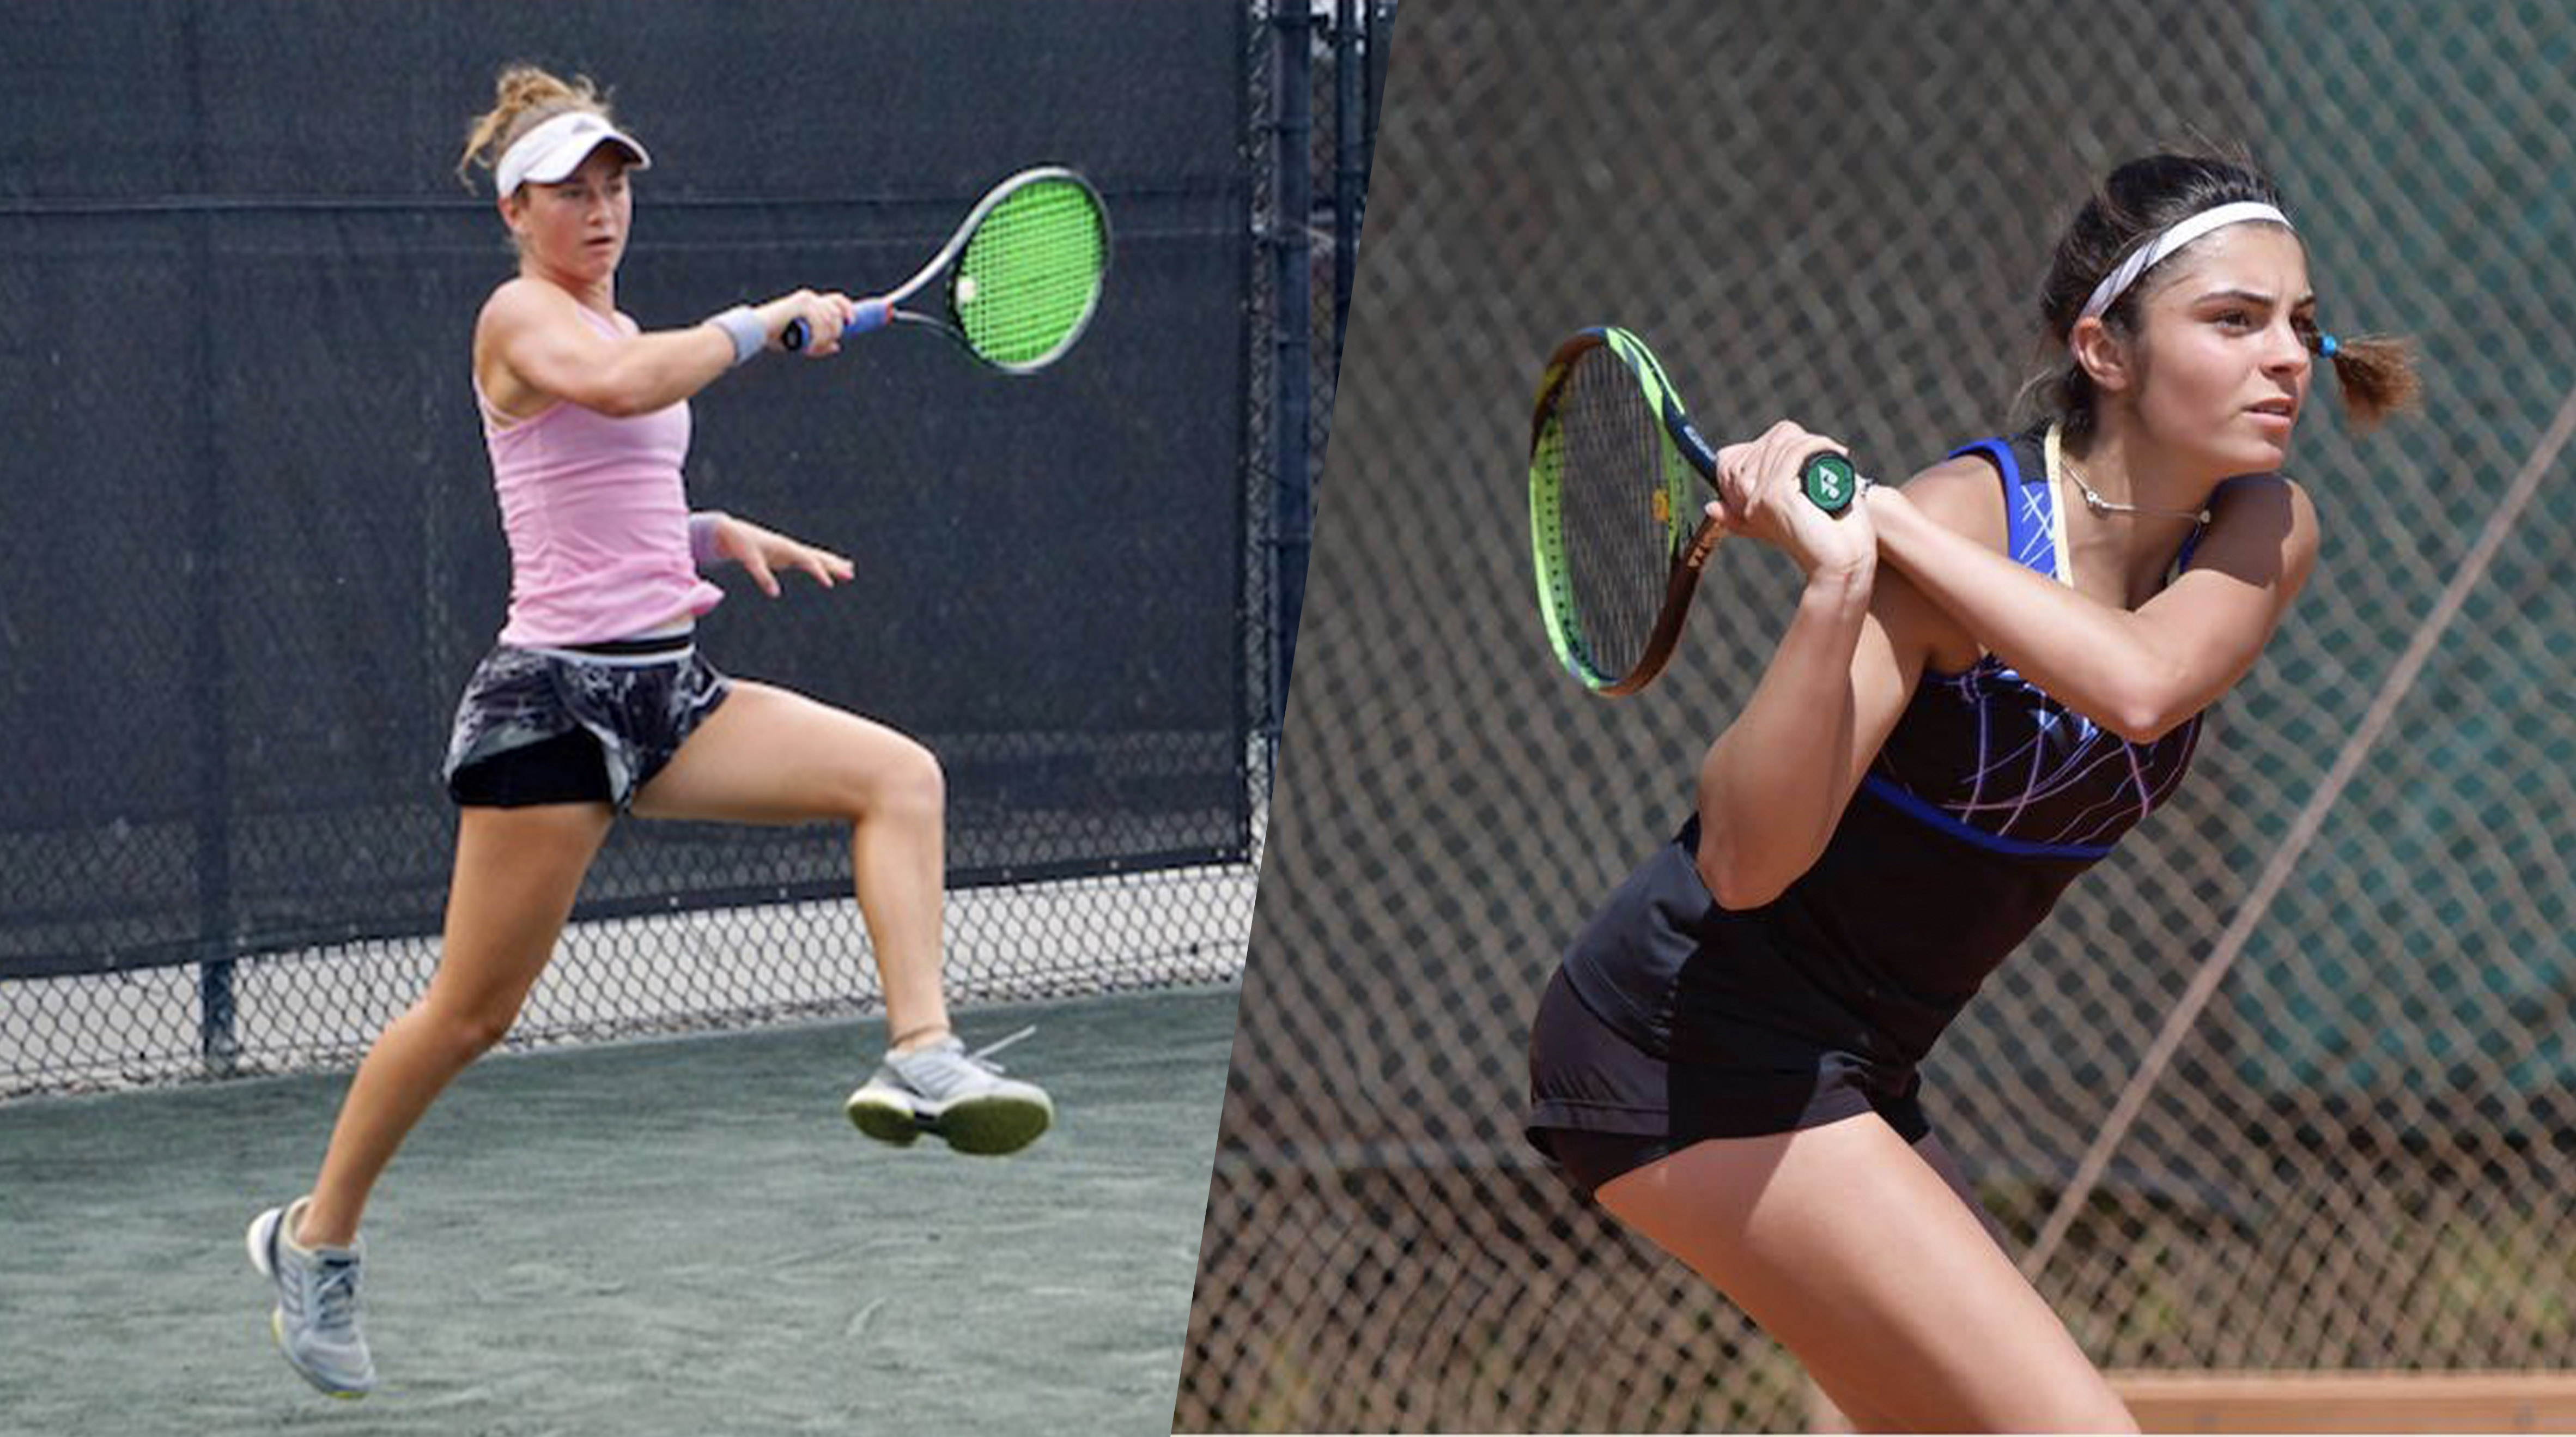 Florida State Women's Tennis Adds Two NLI Signees